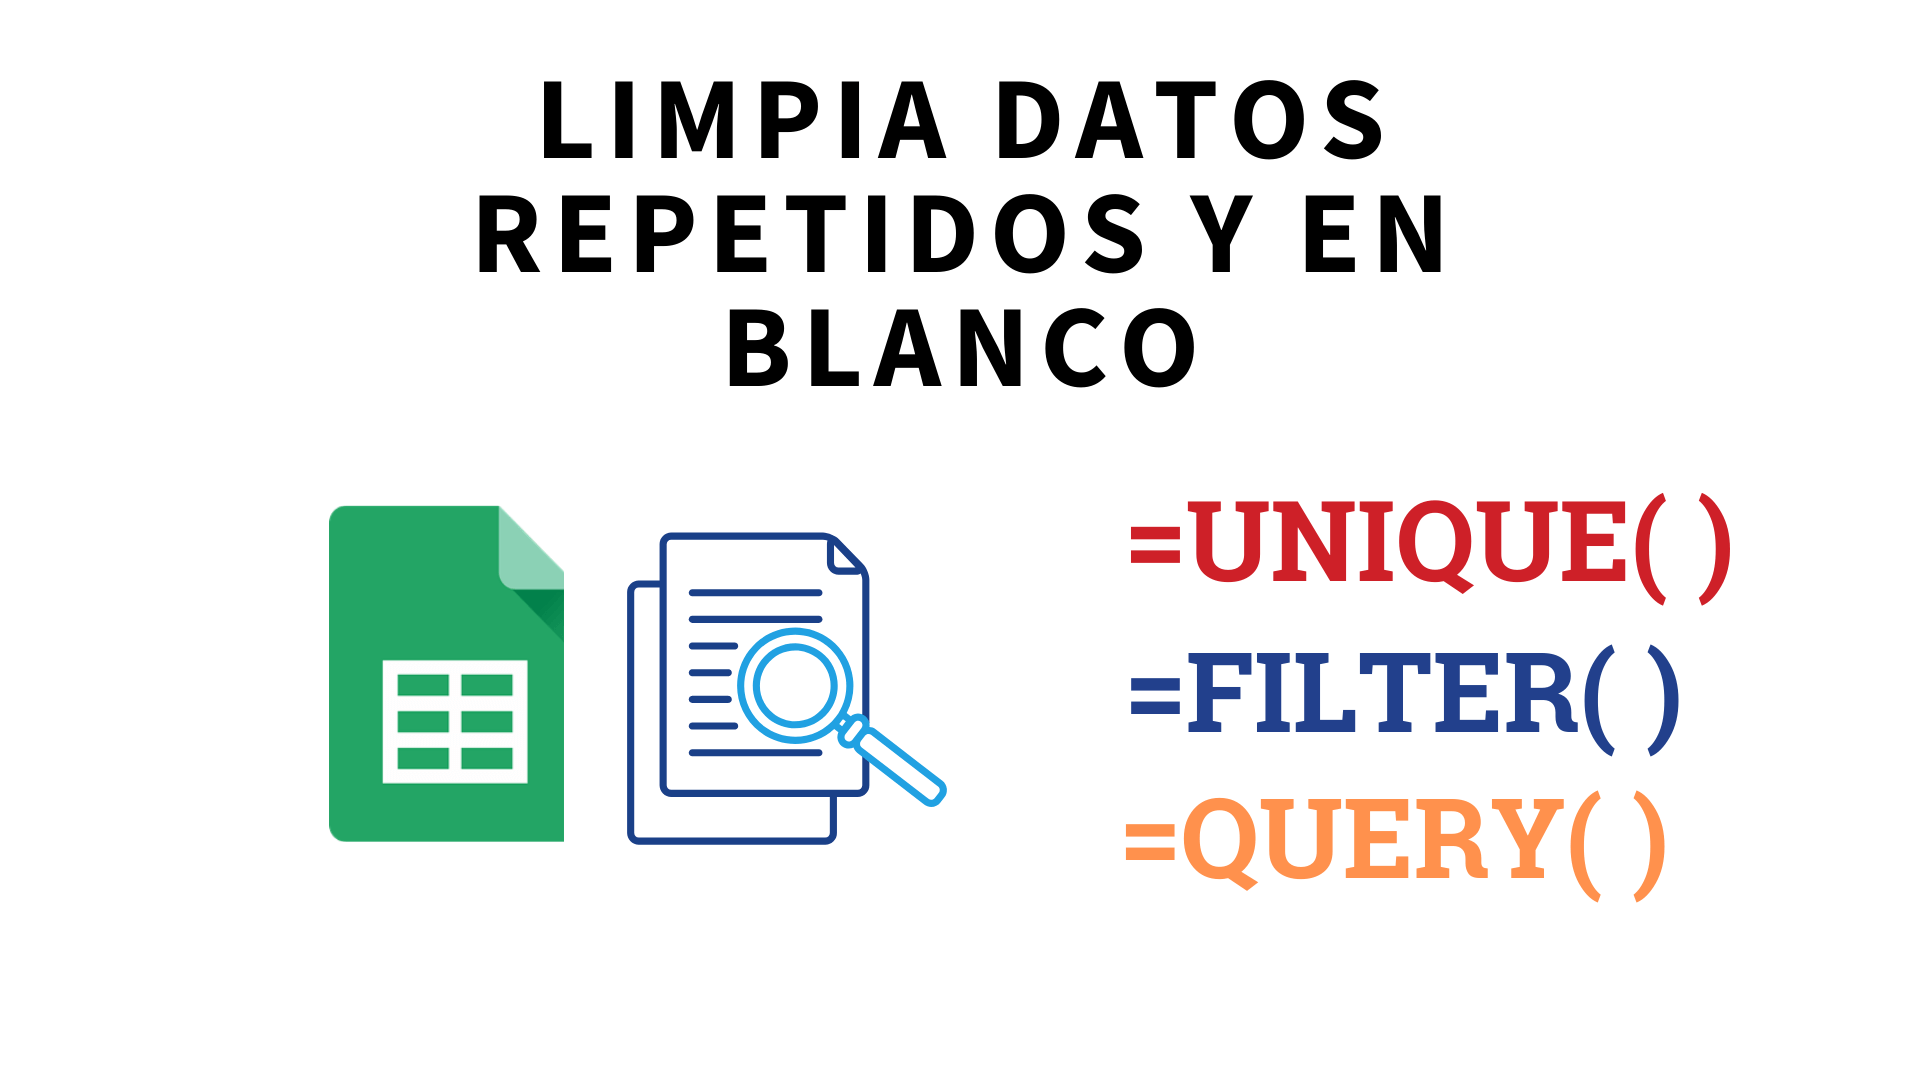 Limpiar datos repetidos en una base de datos de correos en Google Sheets usando UNIQUE(), FILTER() y QUERY()